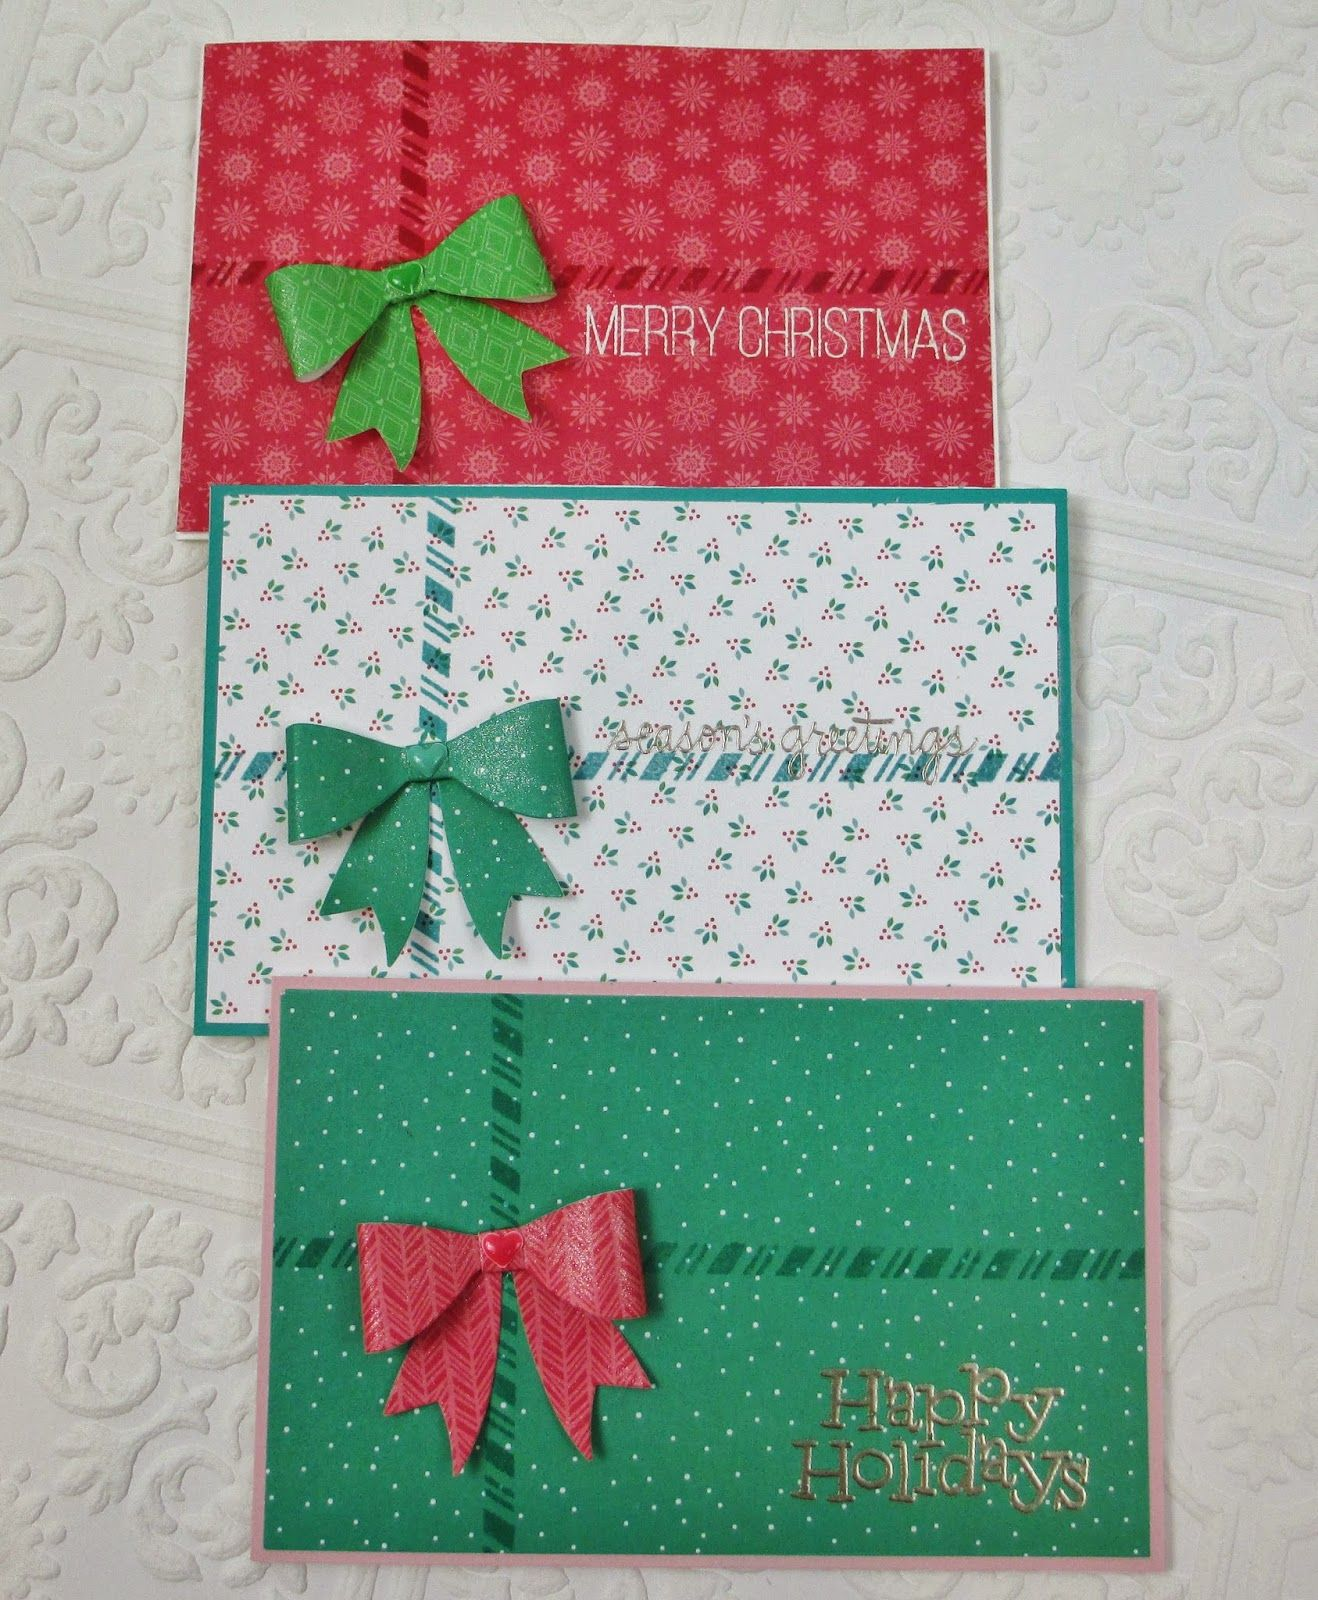 Diy Christmas Gift Card Holder: Simple Gift Card/Money Holder Cards By Heather Ruwe Using